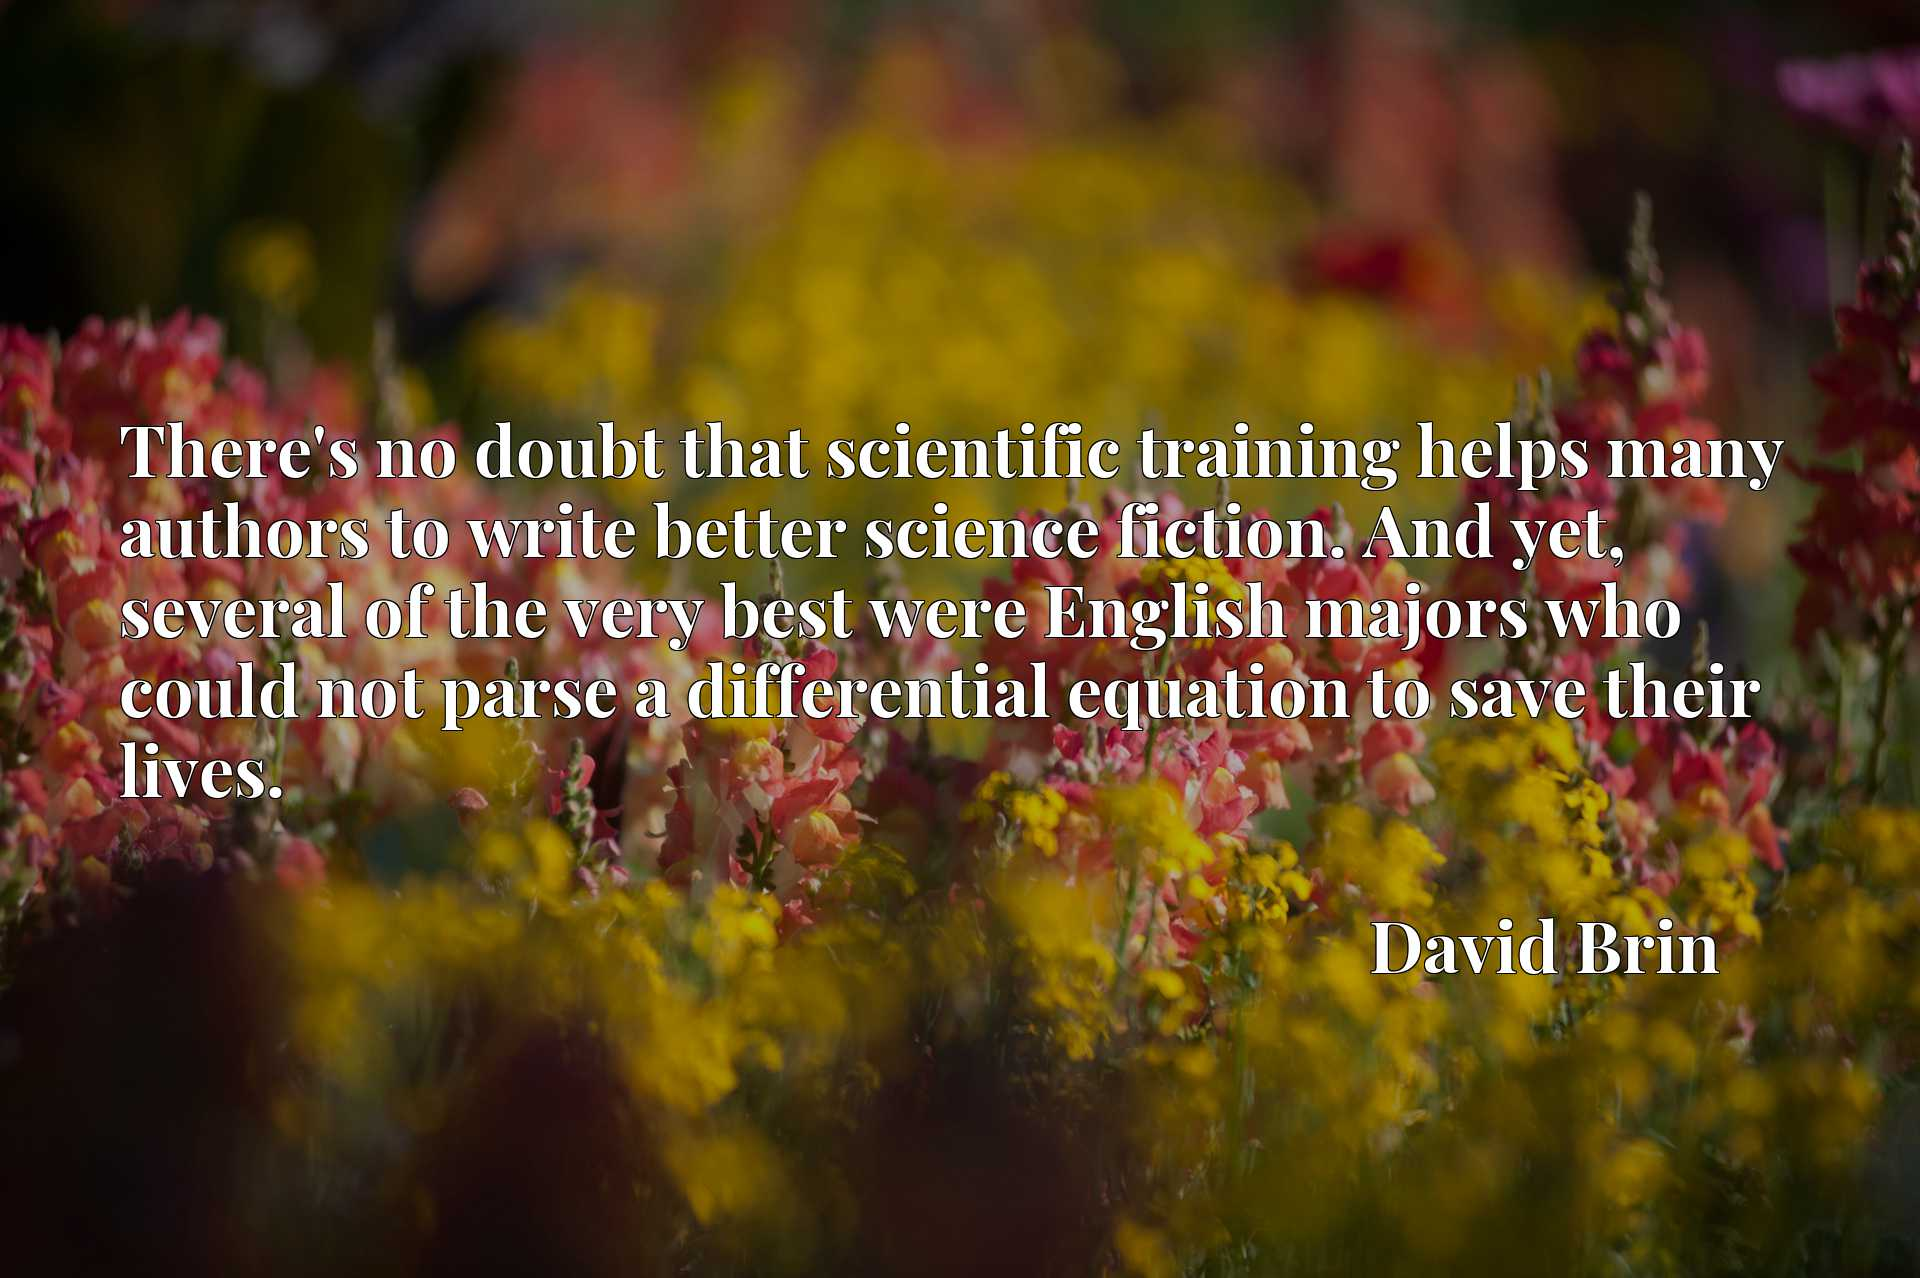 There's no doubt that scientific training helps many authors to write better science fiction. And yet, several of the very best were English majors who could not parse a differential equation to save their lives.